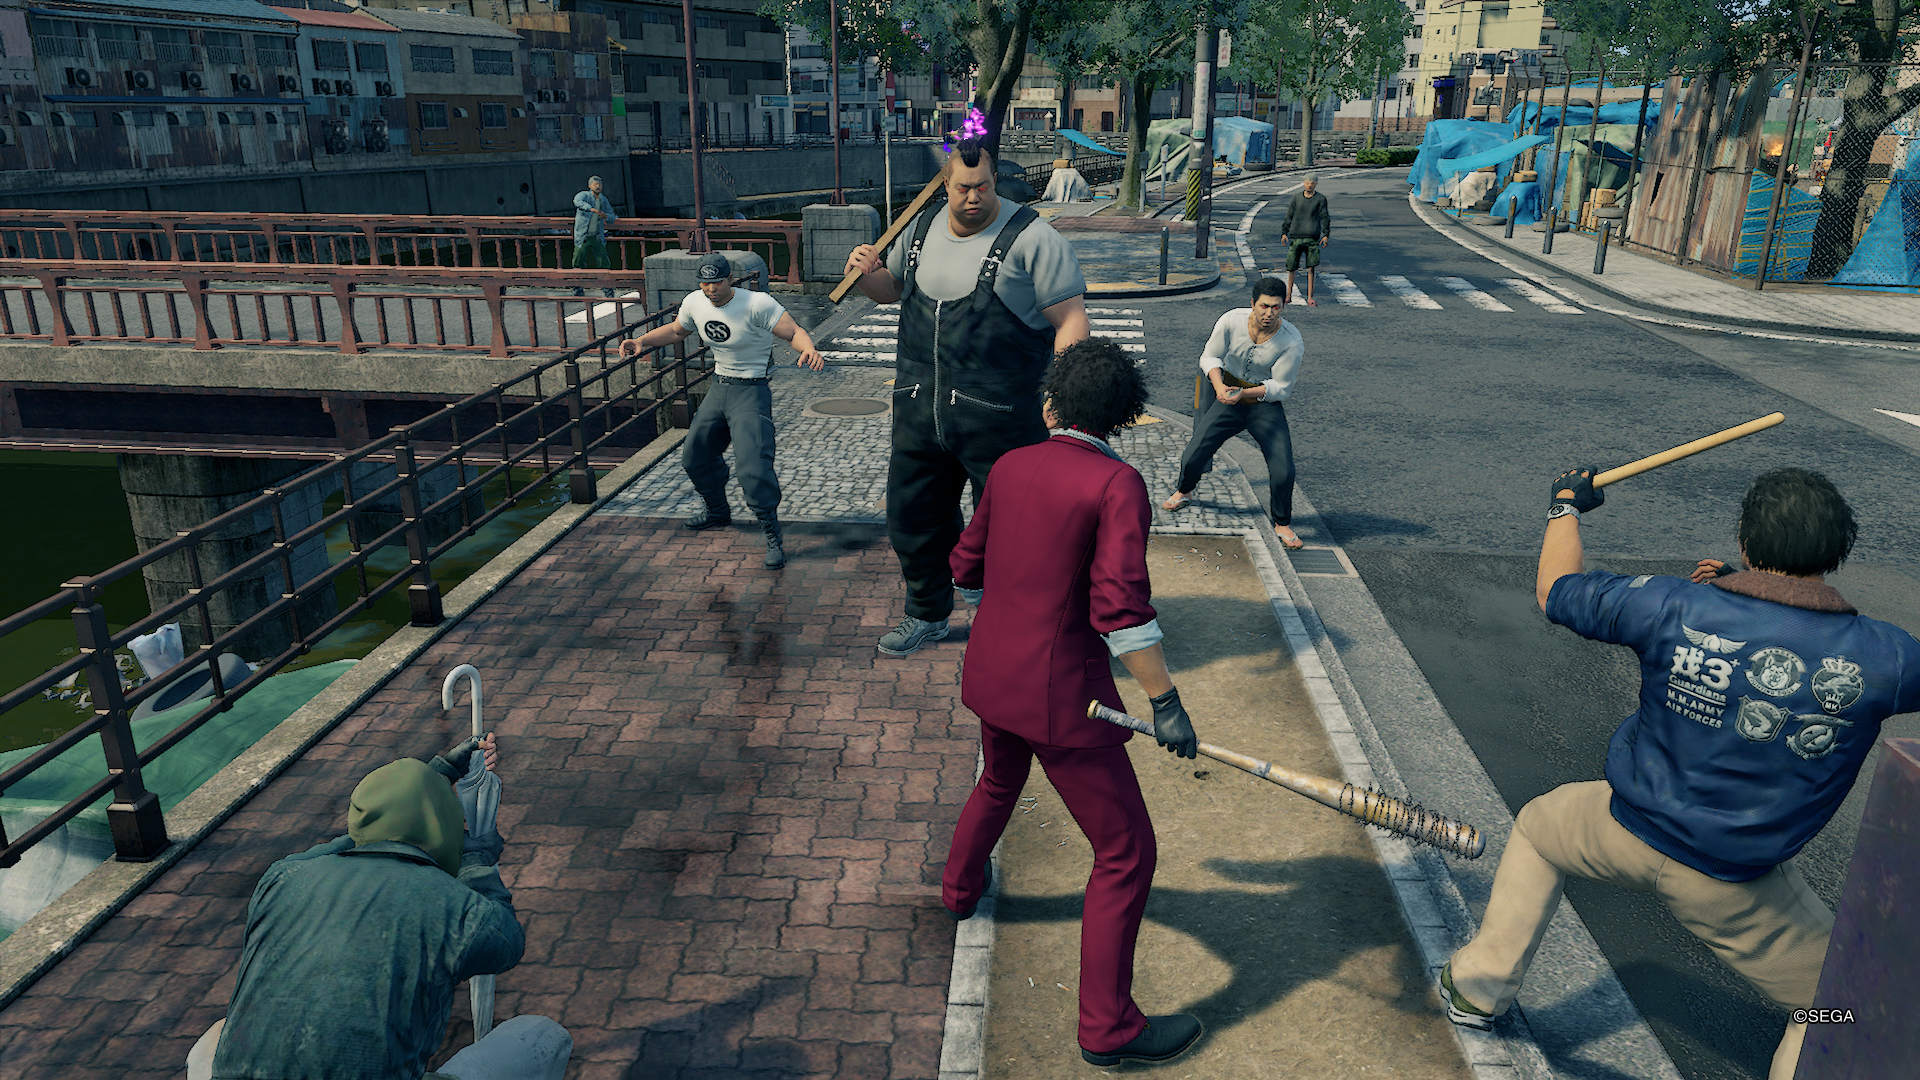 YAKUZA: LIKE A DRAGON arriva in occidente